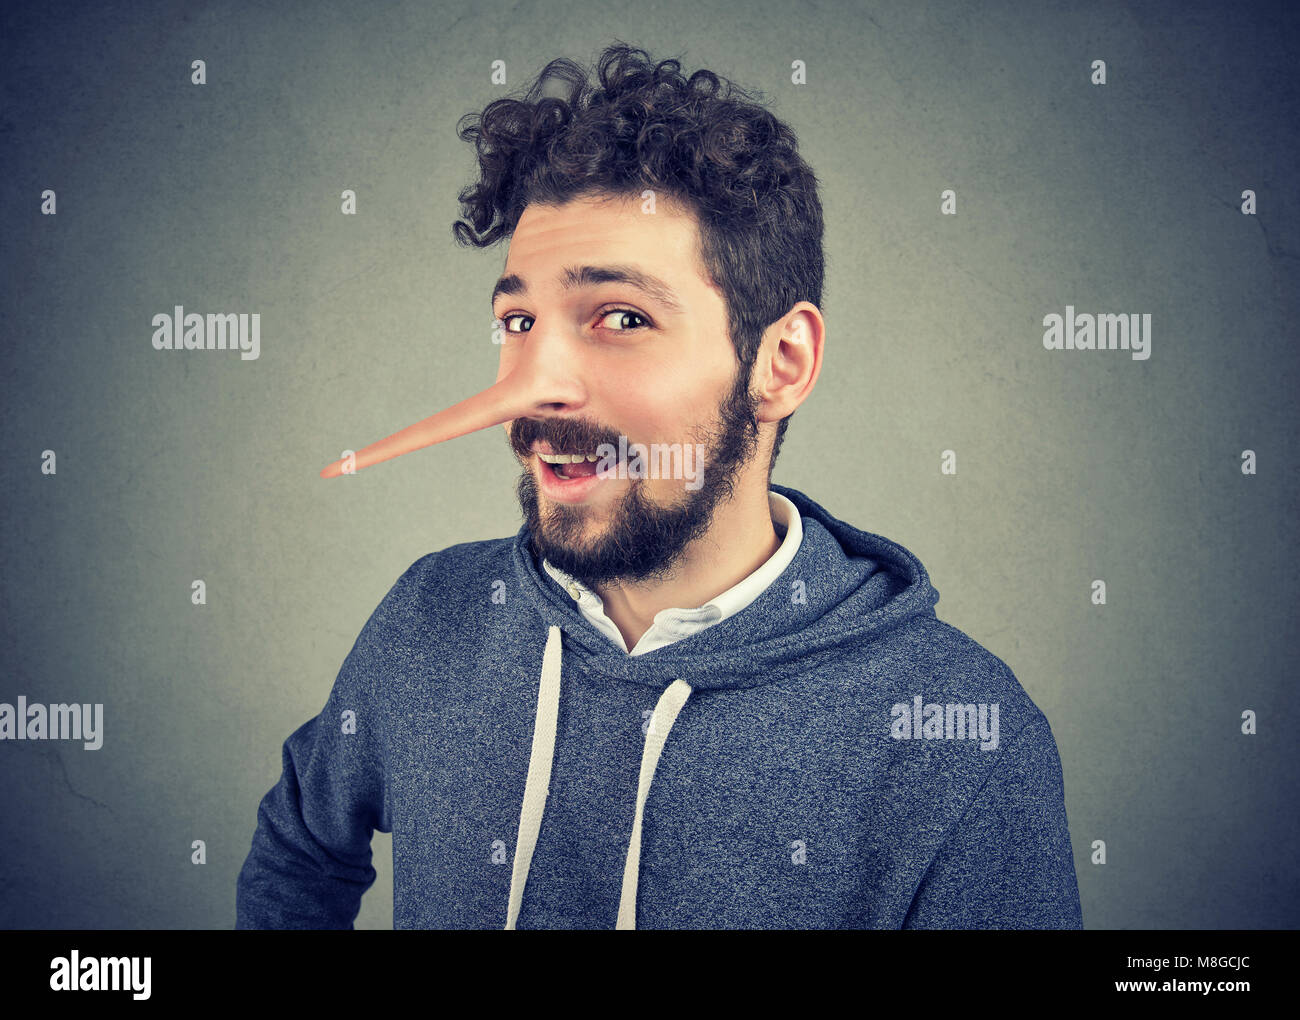 Liar man with long nose isolated on gray background. Human emotions, feelings. - Stock Image